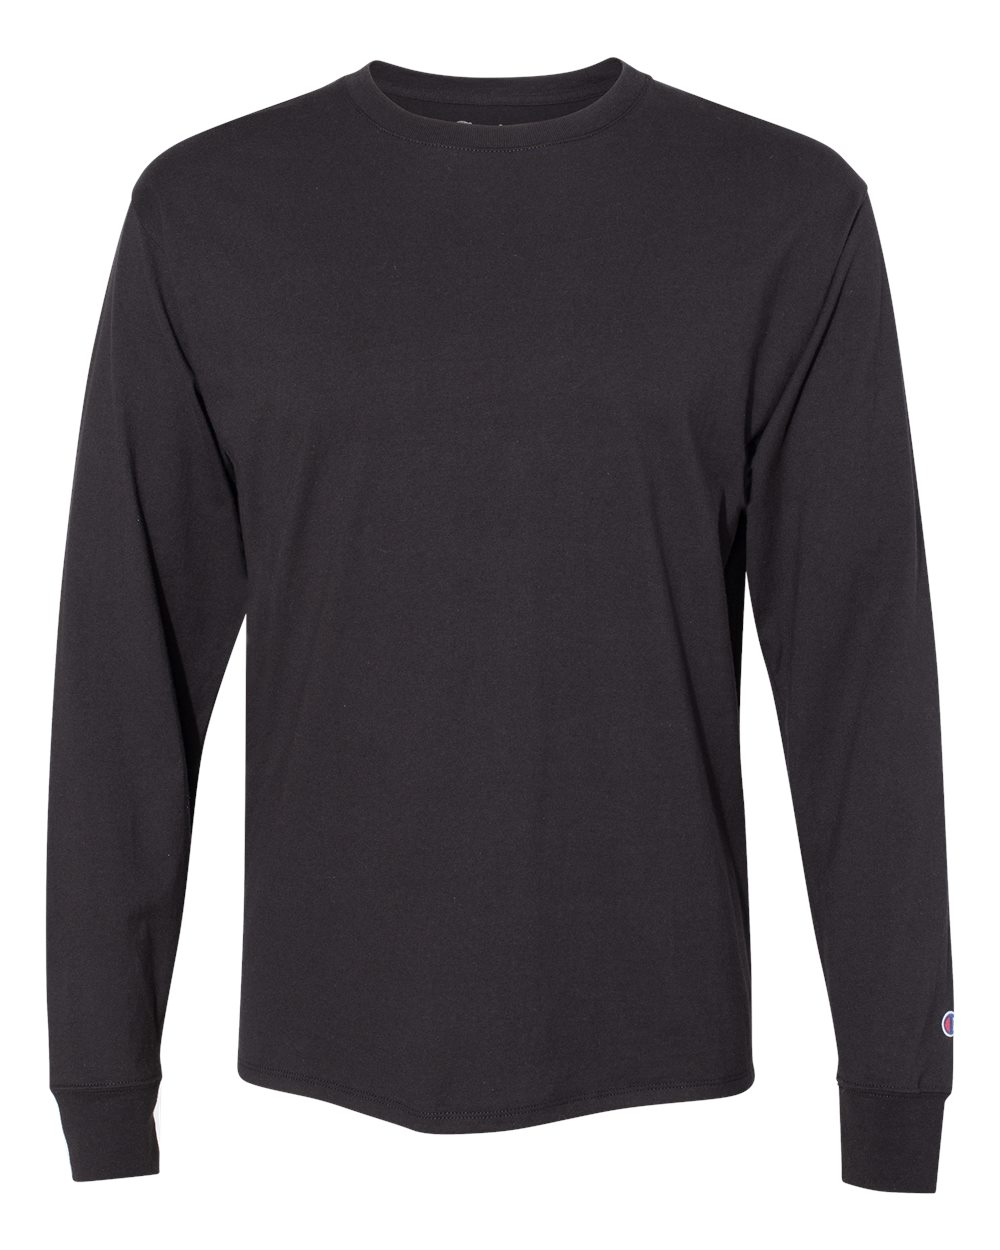 546d6901 Picture of CHAMPION Long-Sleeve Ringspun Cotton T-Shirt